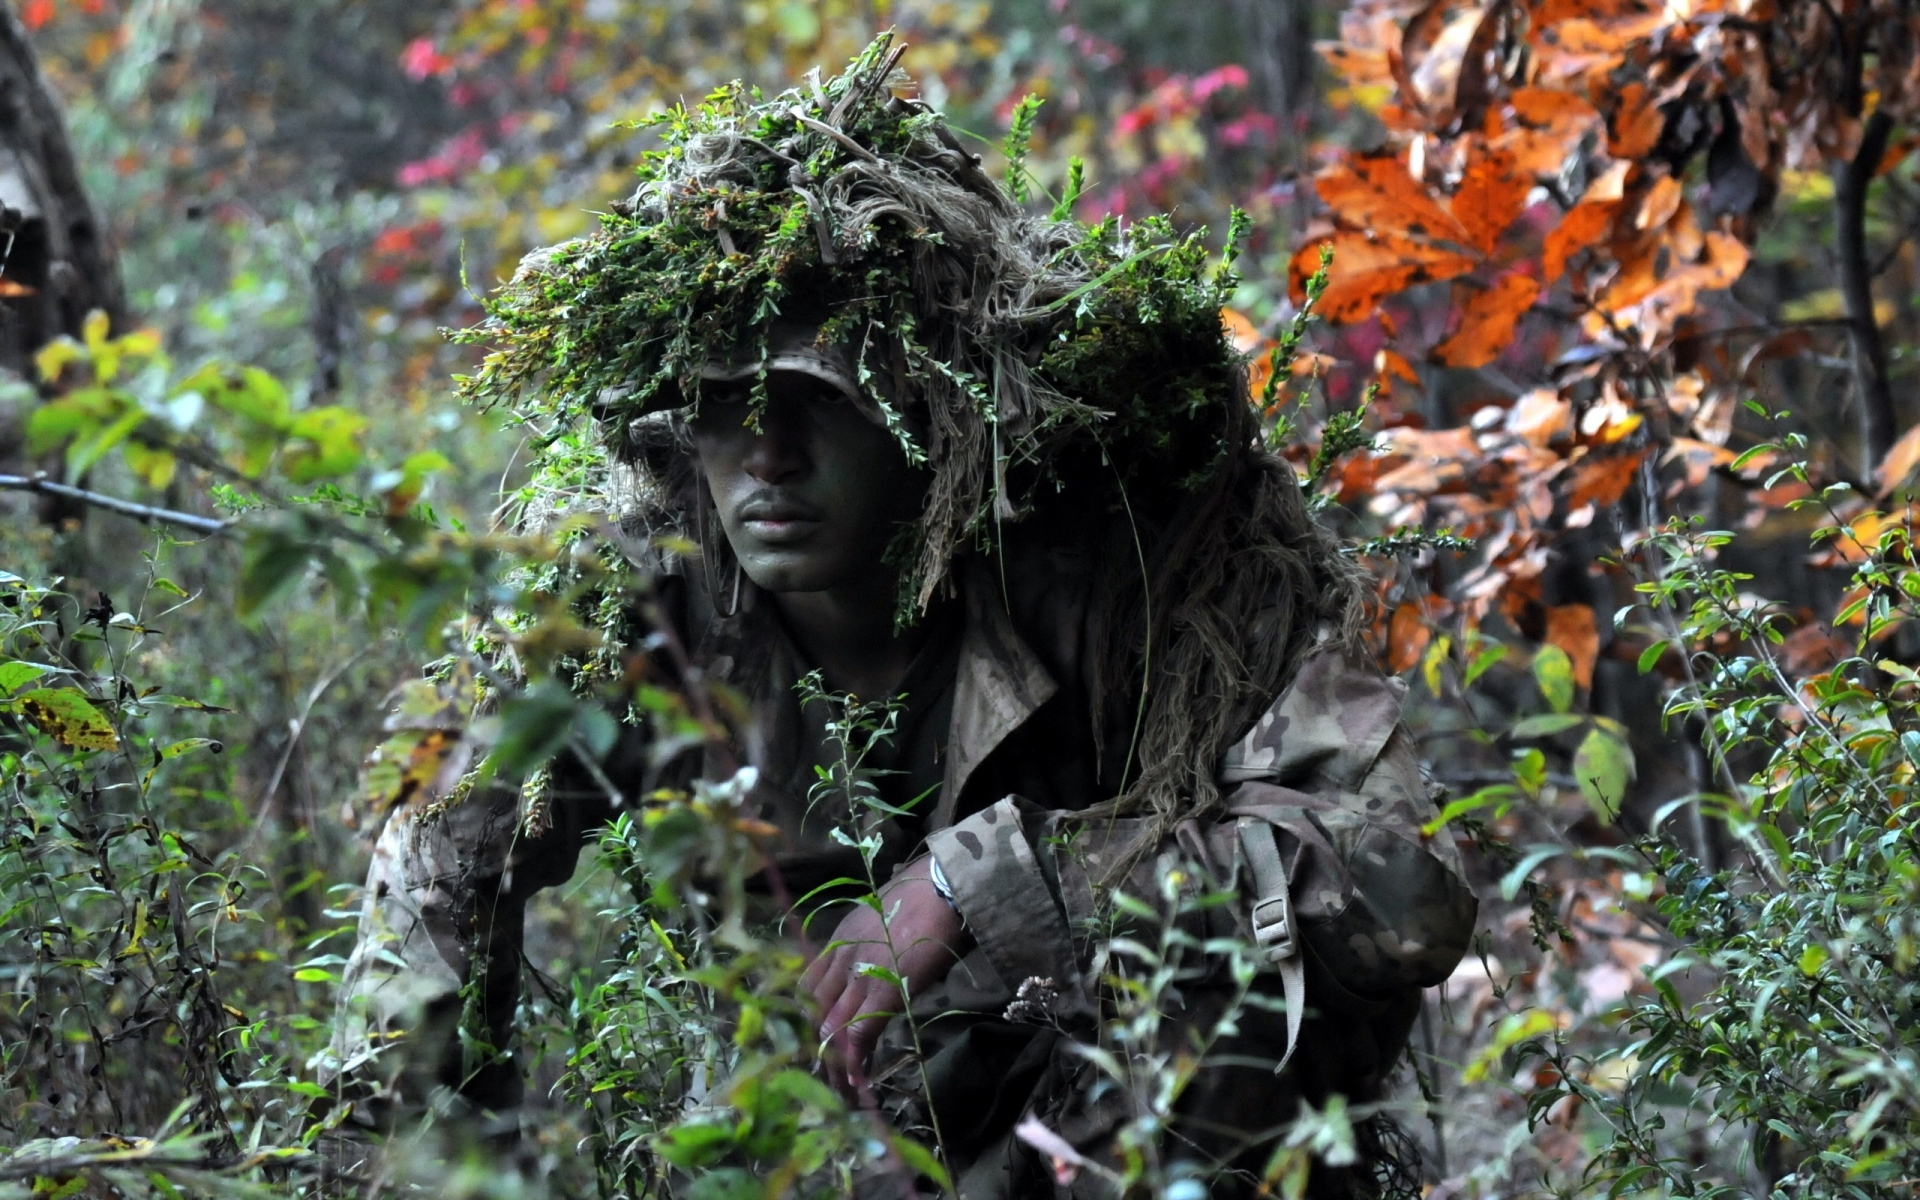 Soldier Camouflage military wallpaper 1920x1200 46791 1920x1200